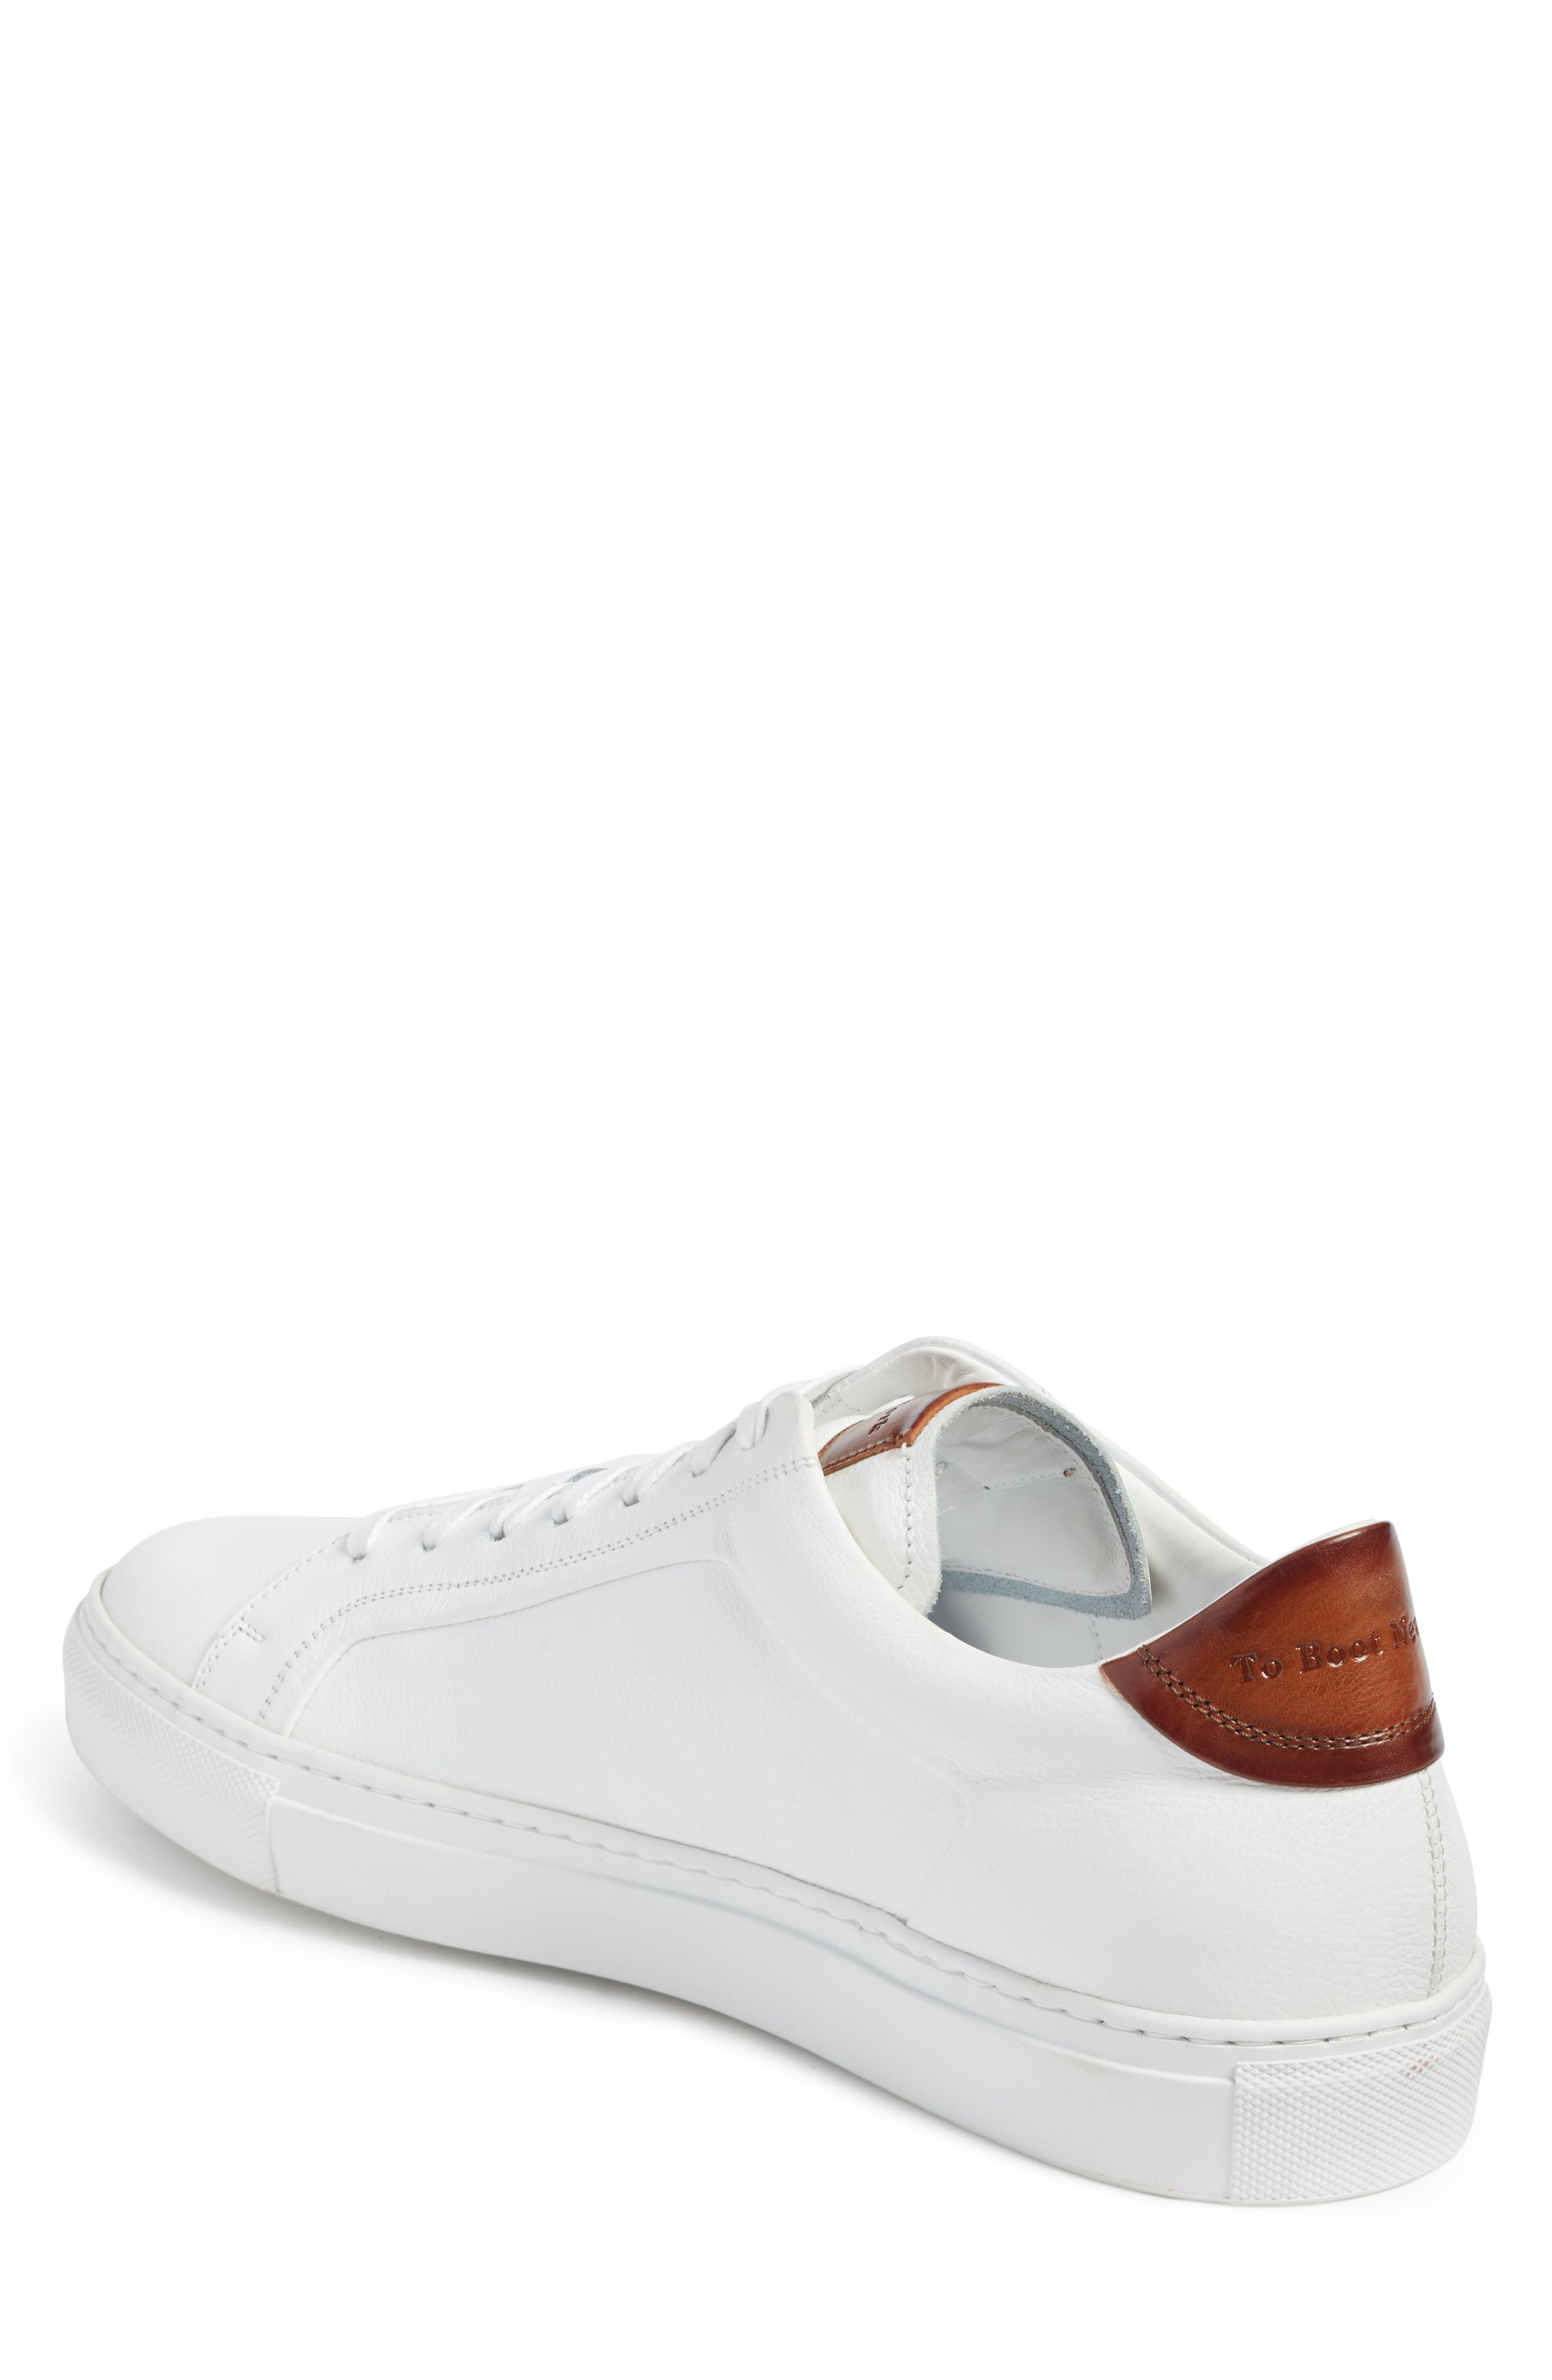 TO BOOT NEW YORK, Carlin Sneaker, Alternate thumbnail 2, color, WHITE/ TAN LEATHER